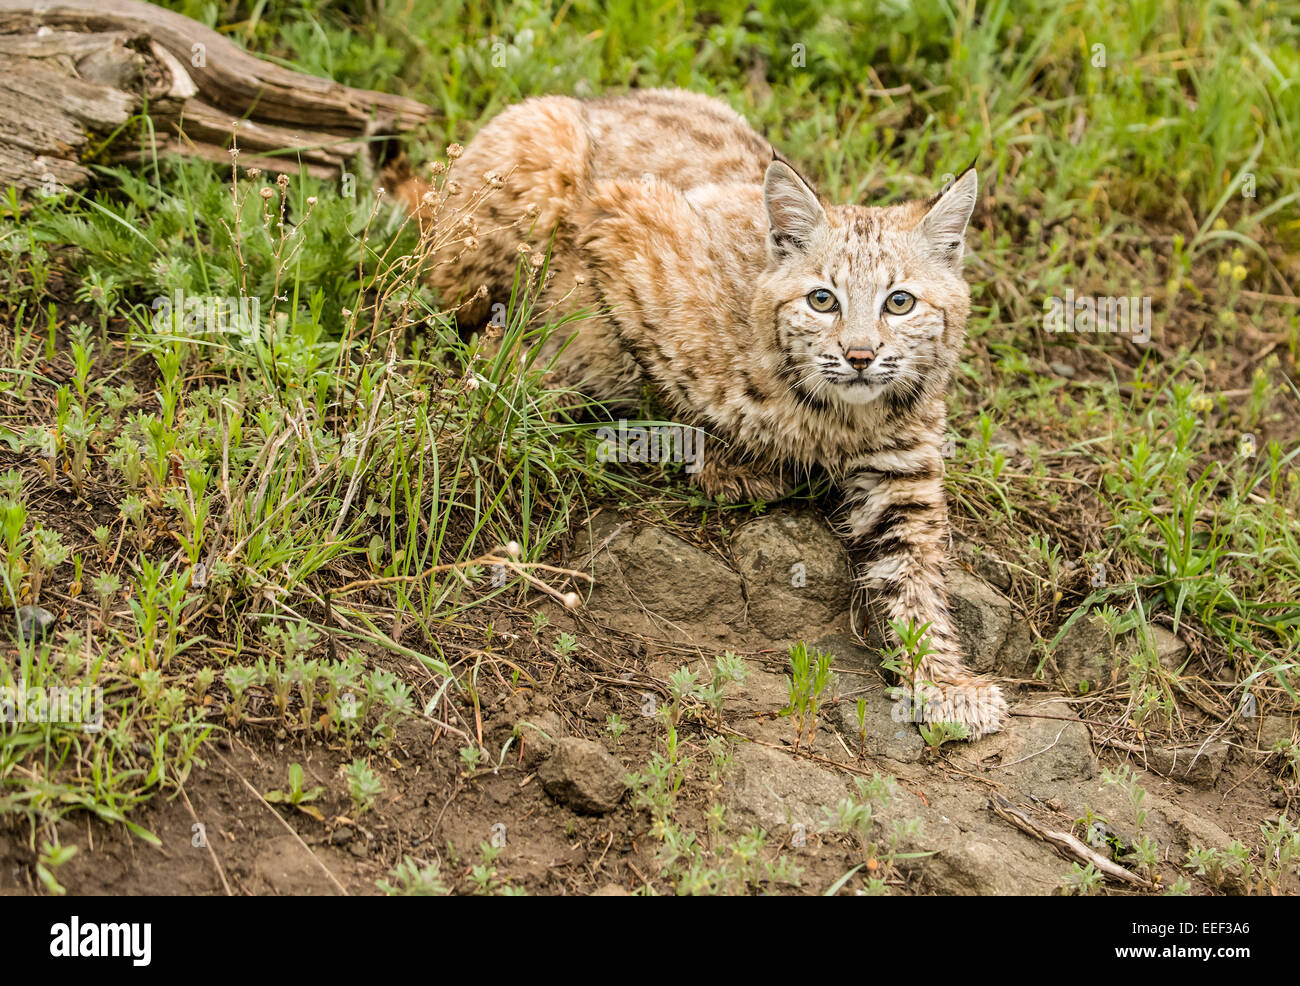 Bobcat walking in a meadow searching for prey near Bozeman